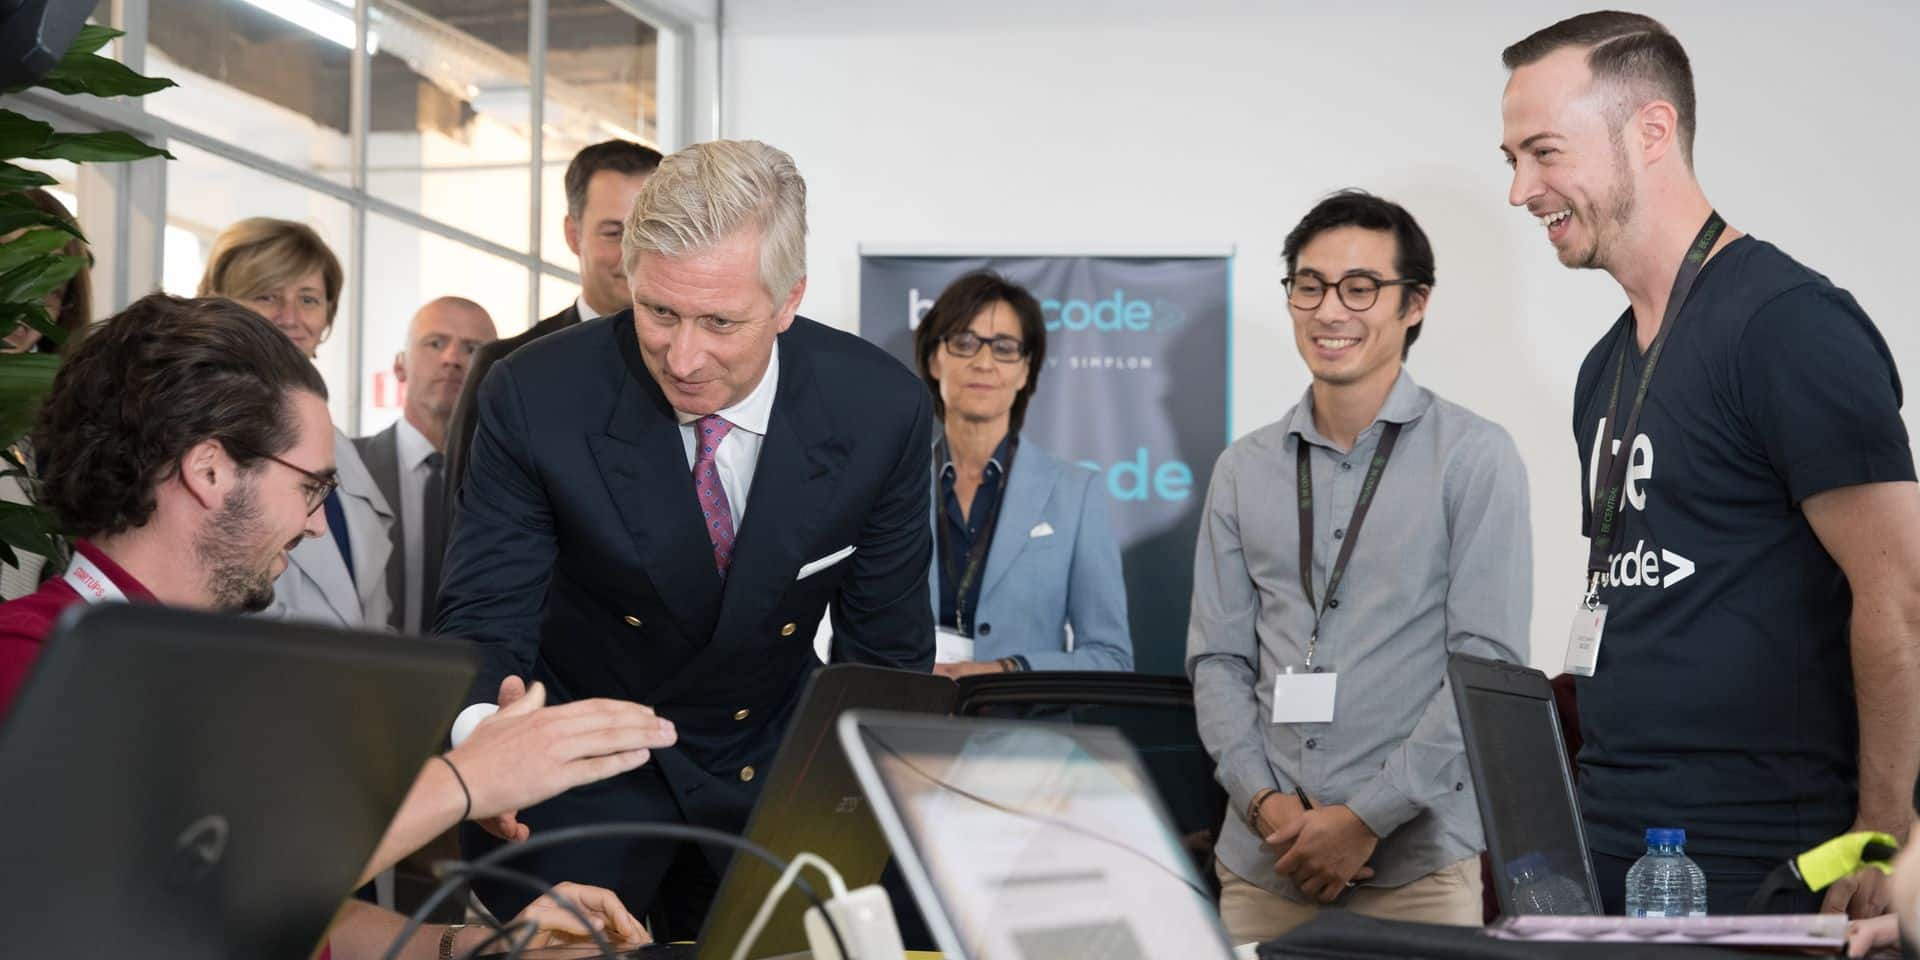 King Philippe - Filip of Belgium pictured during official inauguration of Becentral by the King of Belgium, Minister Alexander De Croo and the CEO of 'SNCB' 'NMBS' Wednesday 04 October 2017. BeCentral is a space (2000 m2) dedicated to the education to new technologies in Brussels city center. BELGA PHOTO BENOIT DOPPAGNE